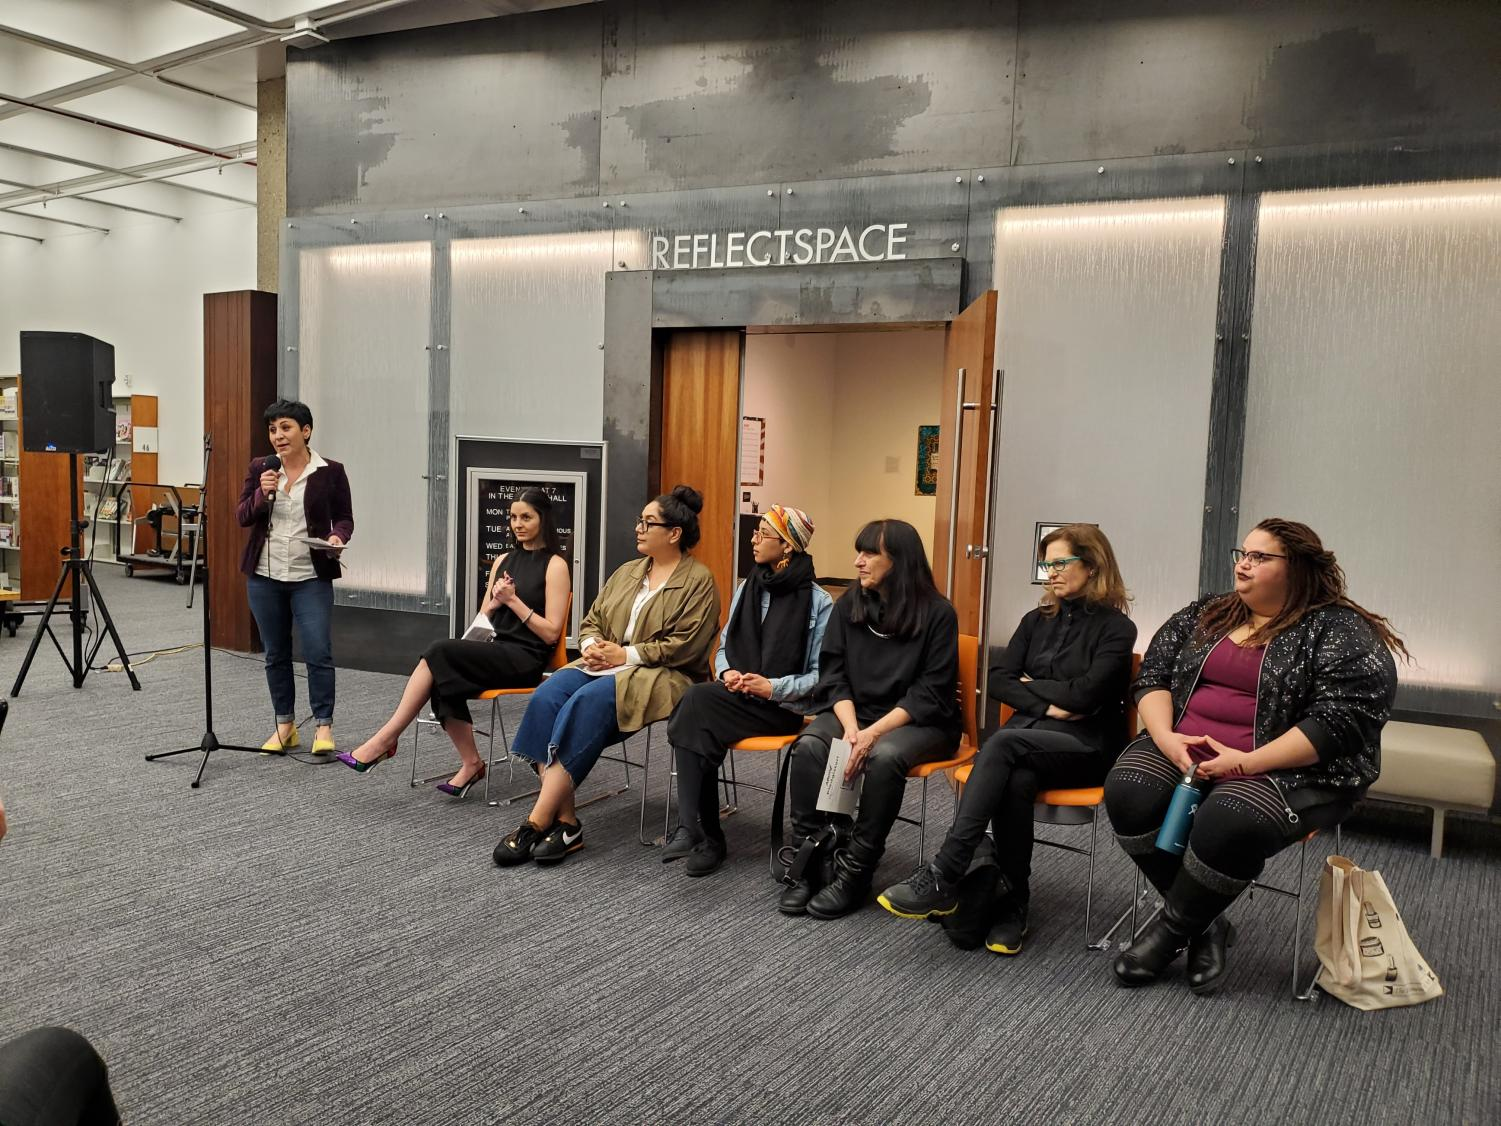 Anahid Oshagan introduces seated artists April Bey, Erika Rothenberg, Joey Forsyte, Jess Castillo, and Lucia Torres (from right to left) with co-curator Ani Ohanessian seated beside her.